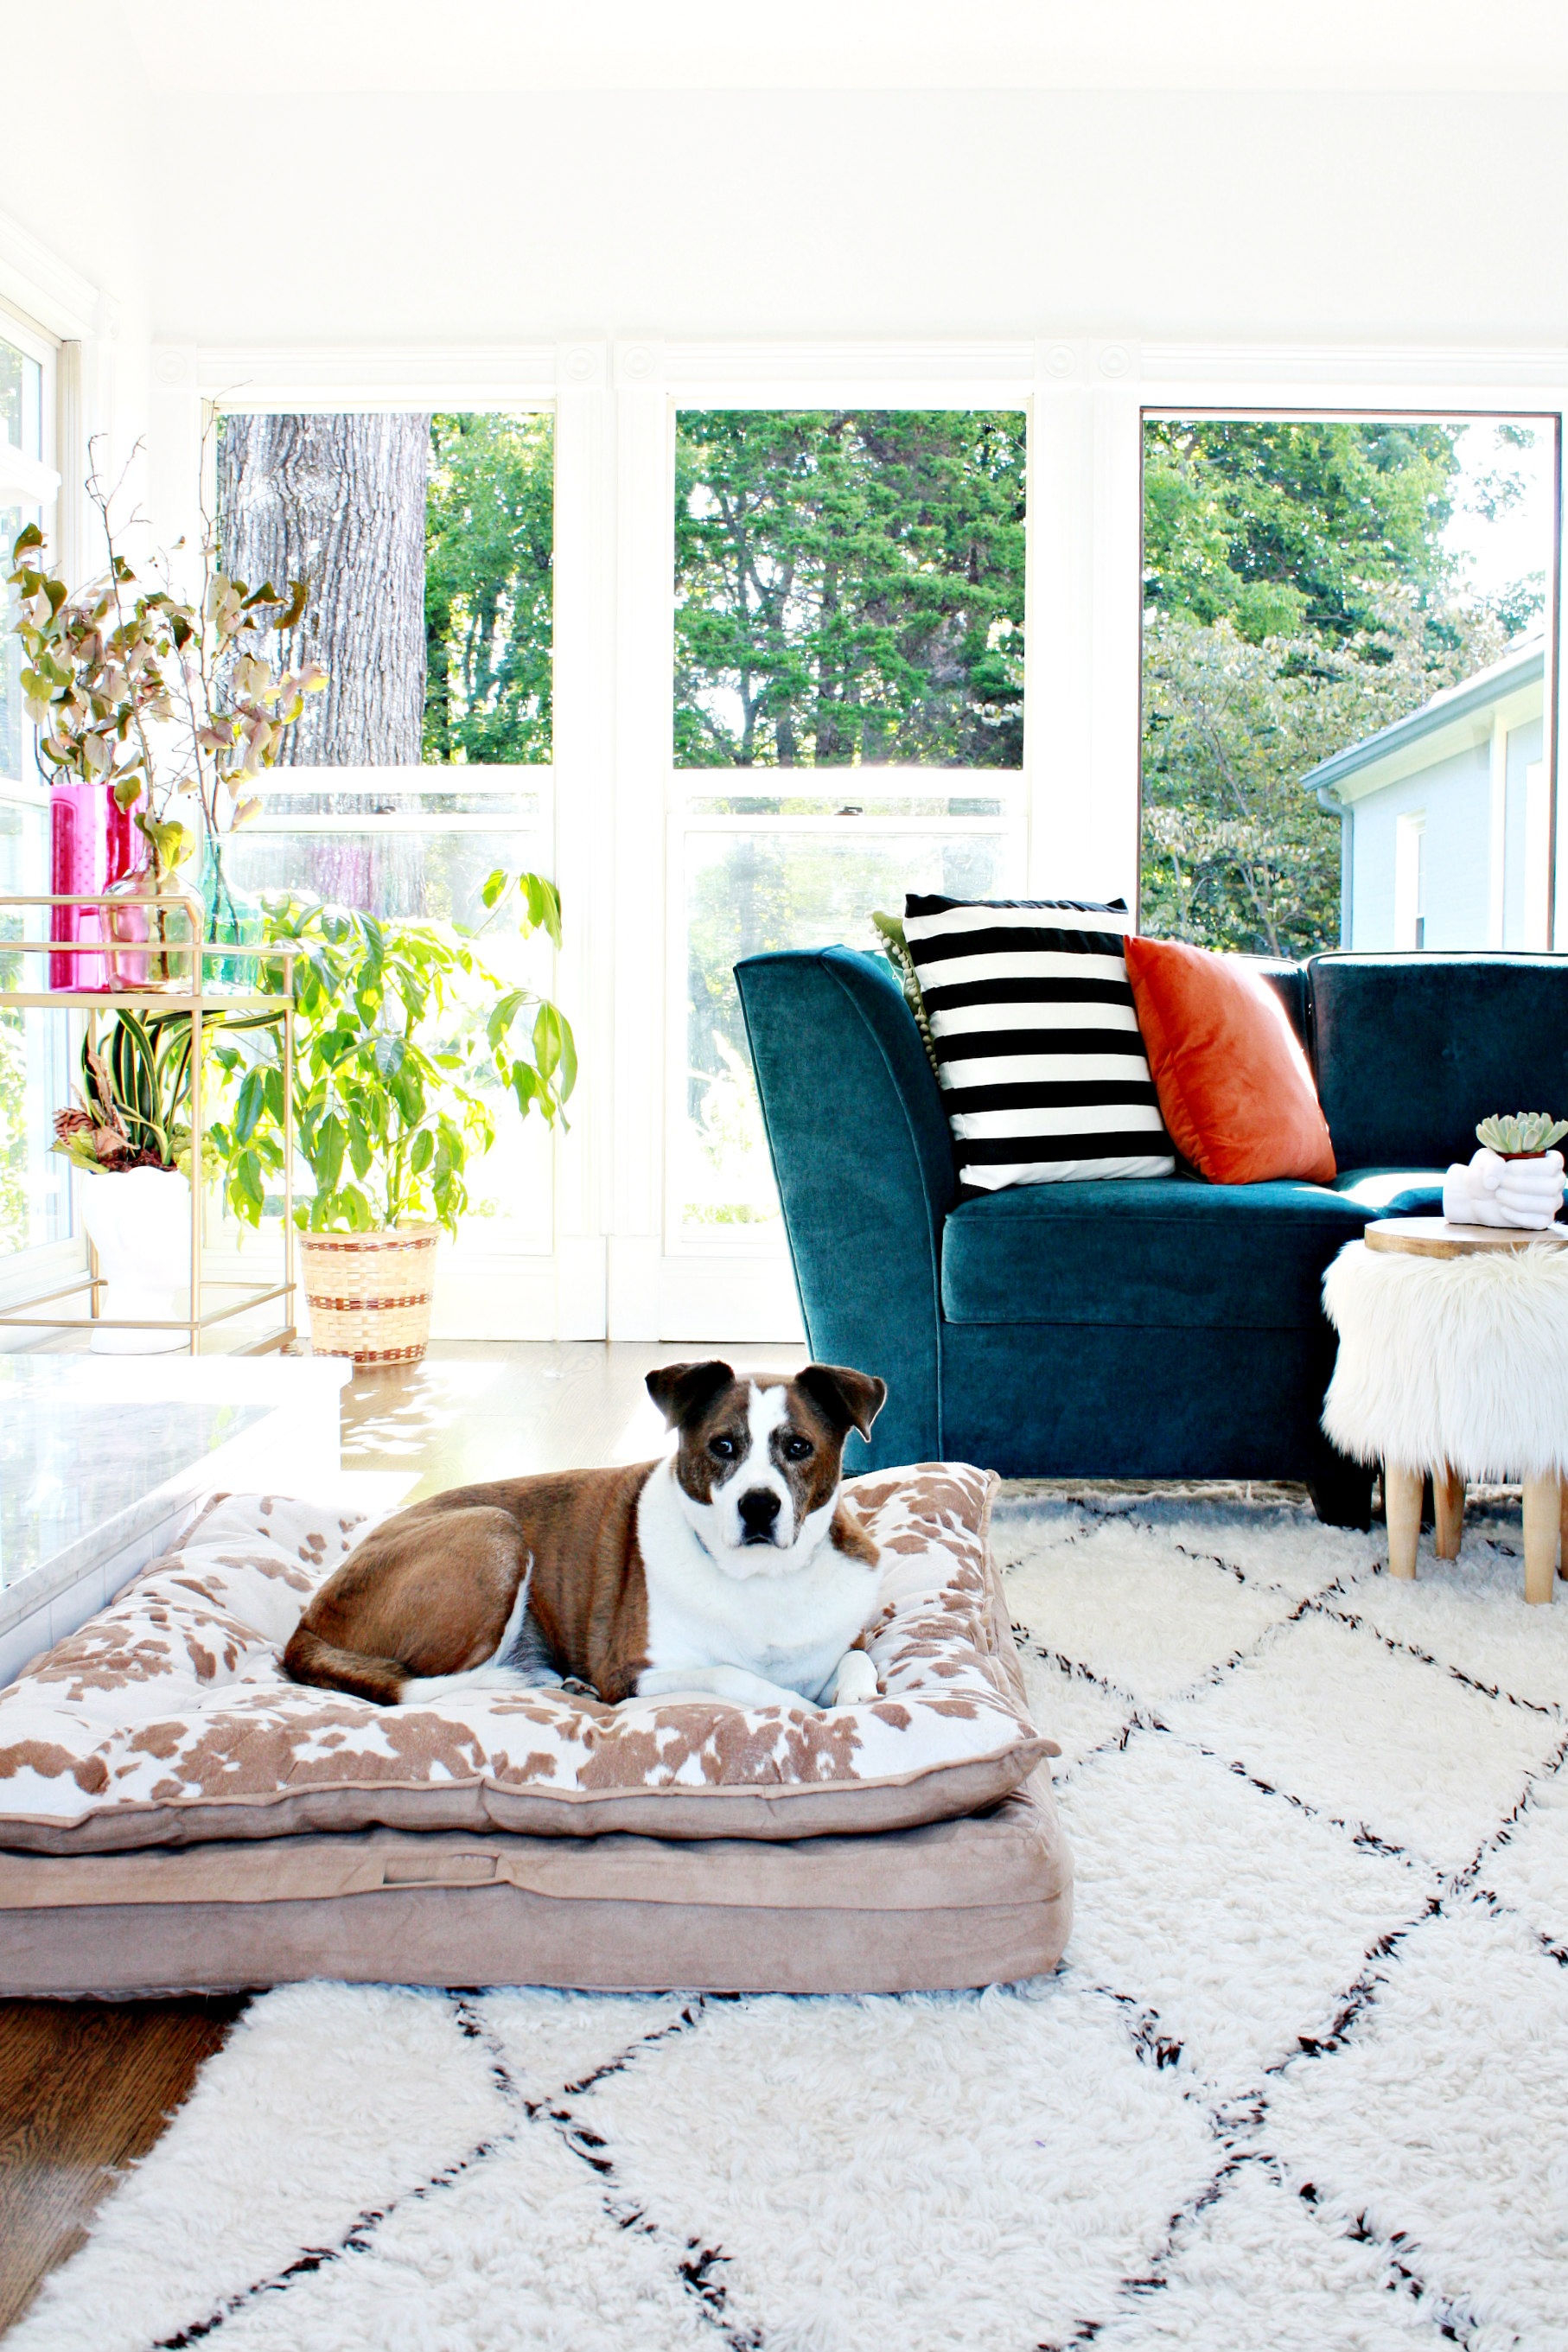 why we love our moroccan shag rug - first you should know i have  elementary age kids and a  pound dog idid question myself just once about the very light color of the rugknowing our